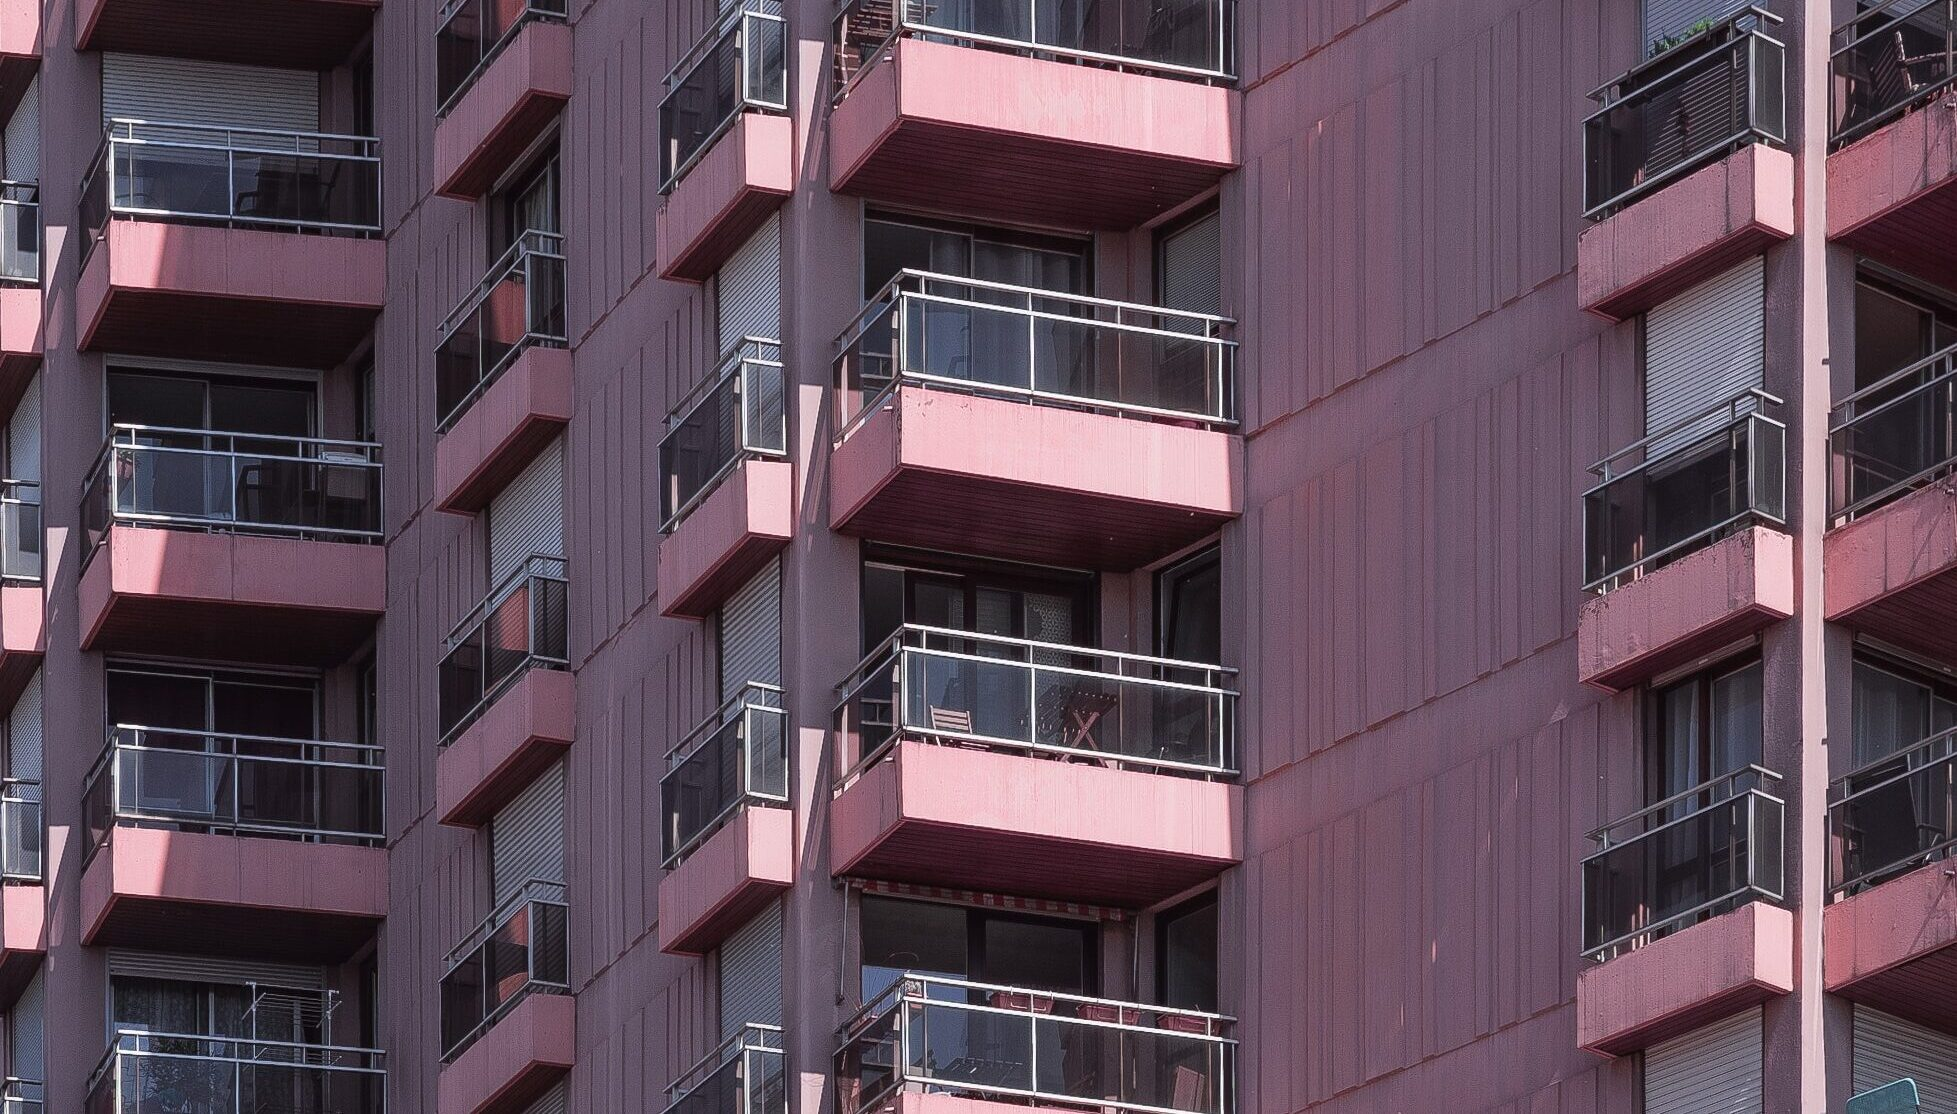 Balconies of an apartment building